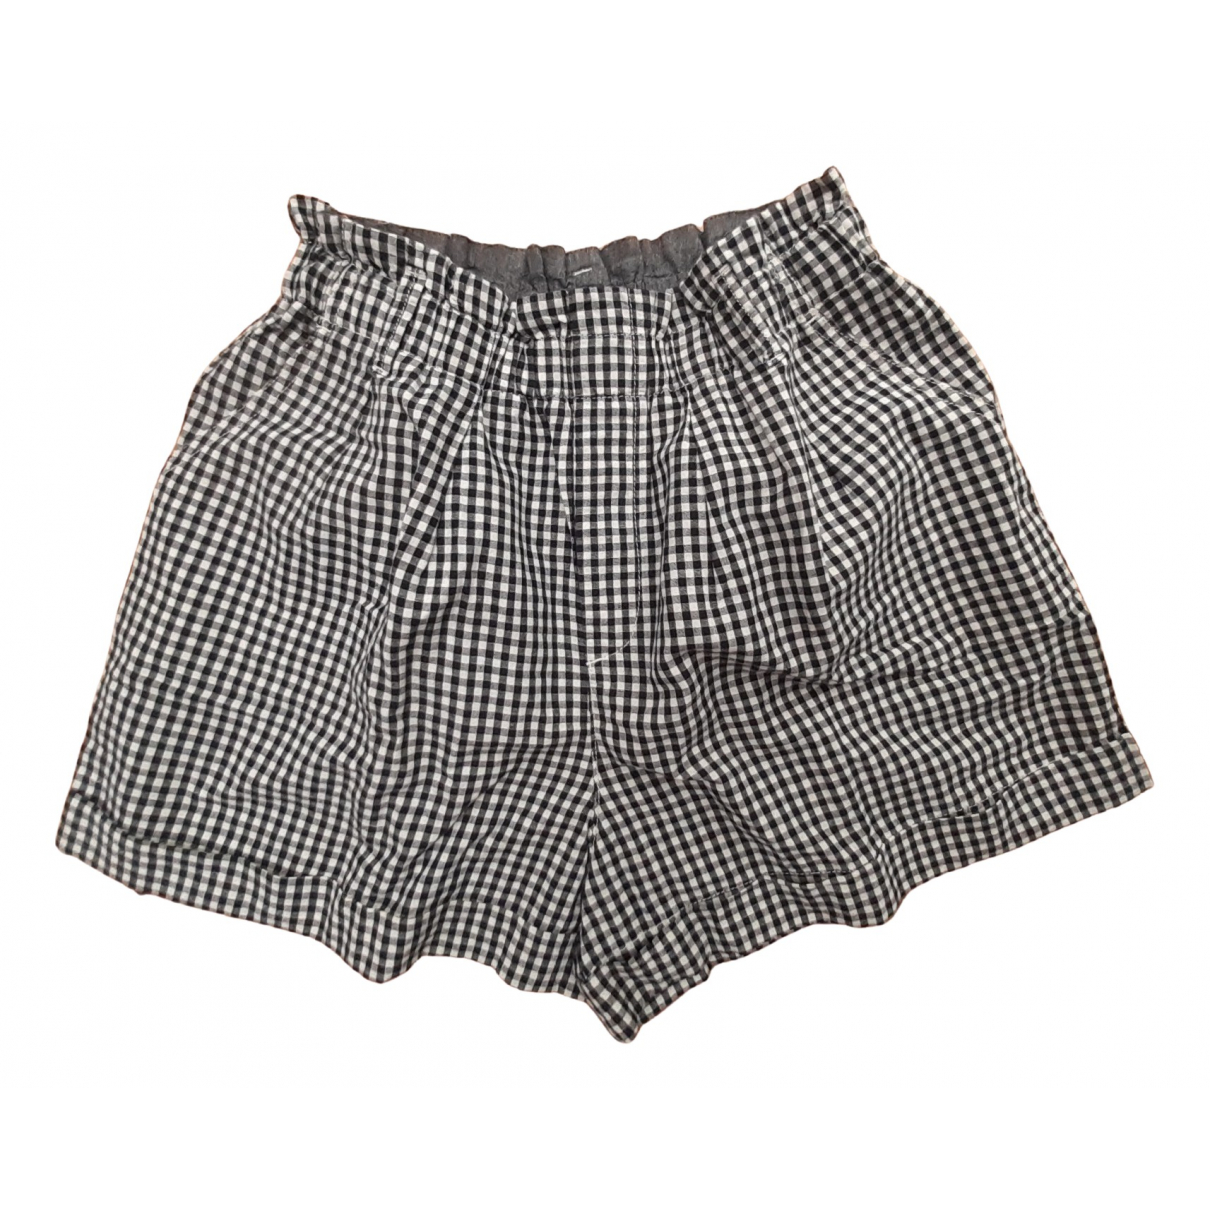 Uniqlo \N Cotton Shorts for Women M International